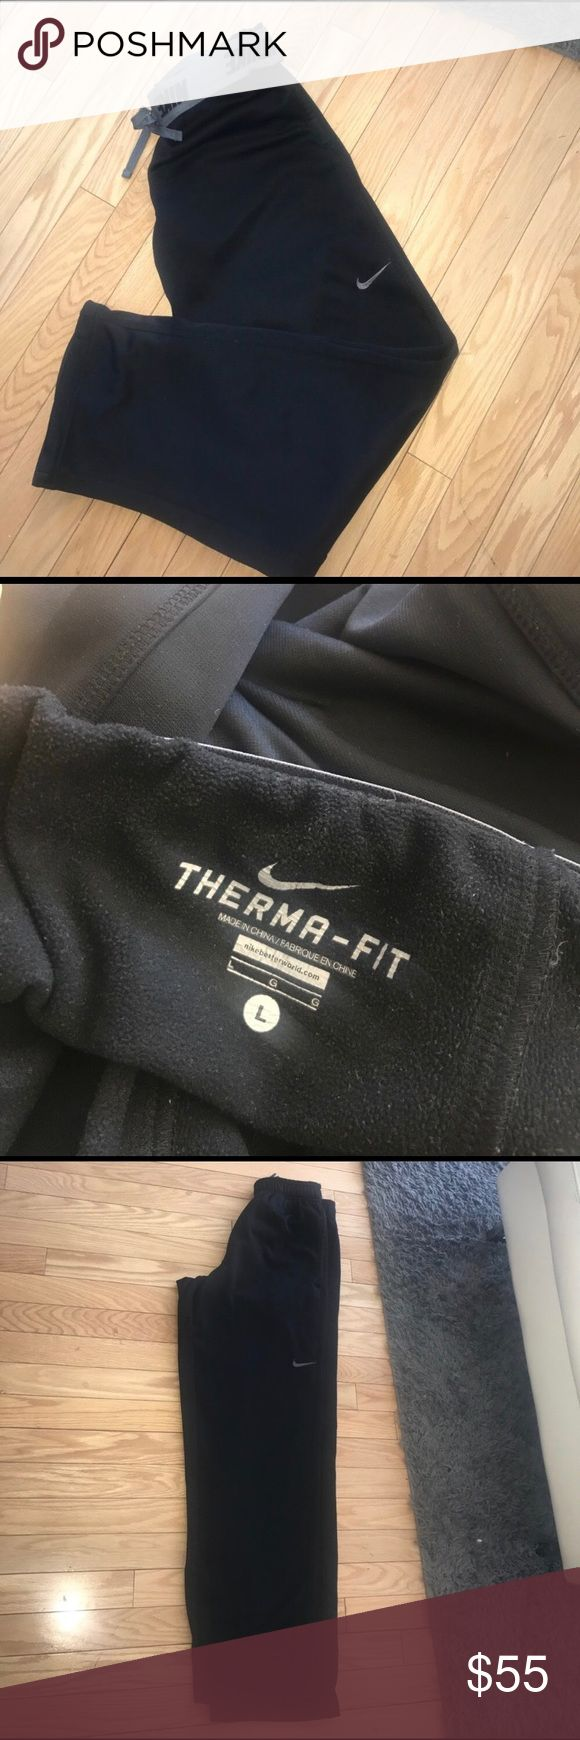 Nike MENS THERMA-FIT TRAINING PANTS 👖 LARGE Nike MENS THERMA-FIT TRAINING PANTS 👖 LARGE Made within thermal wicking inside material to keep you warm and comfortable during work outs . 2 side pockets 🌍pre- loved Nike Pants Sweatpants & Joggers